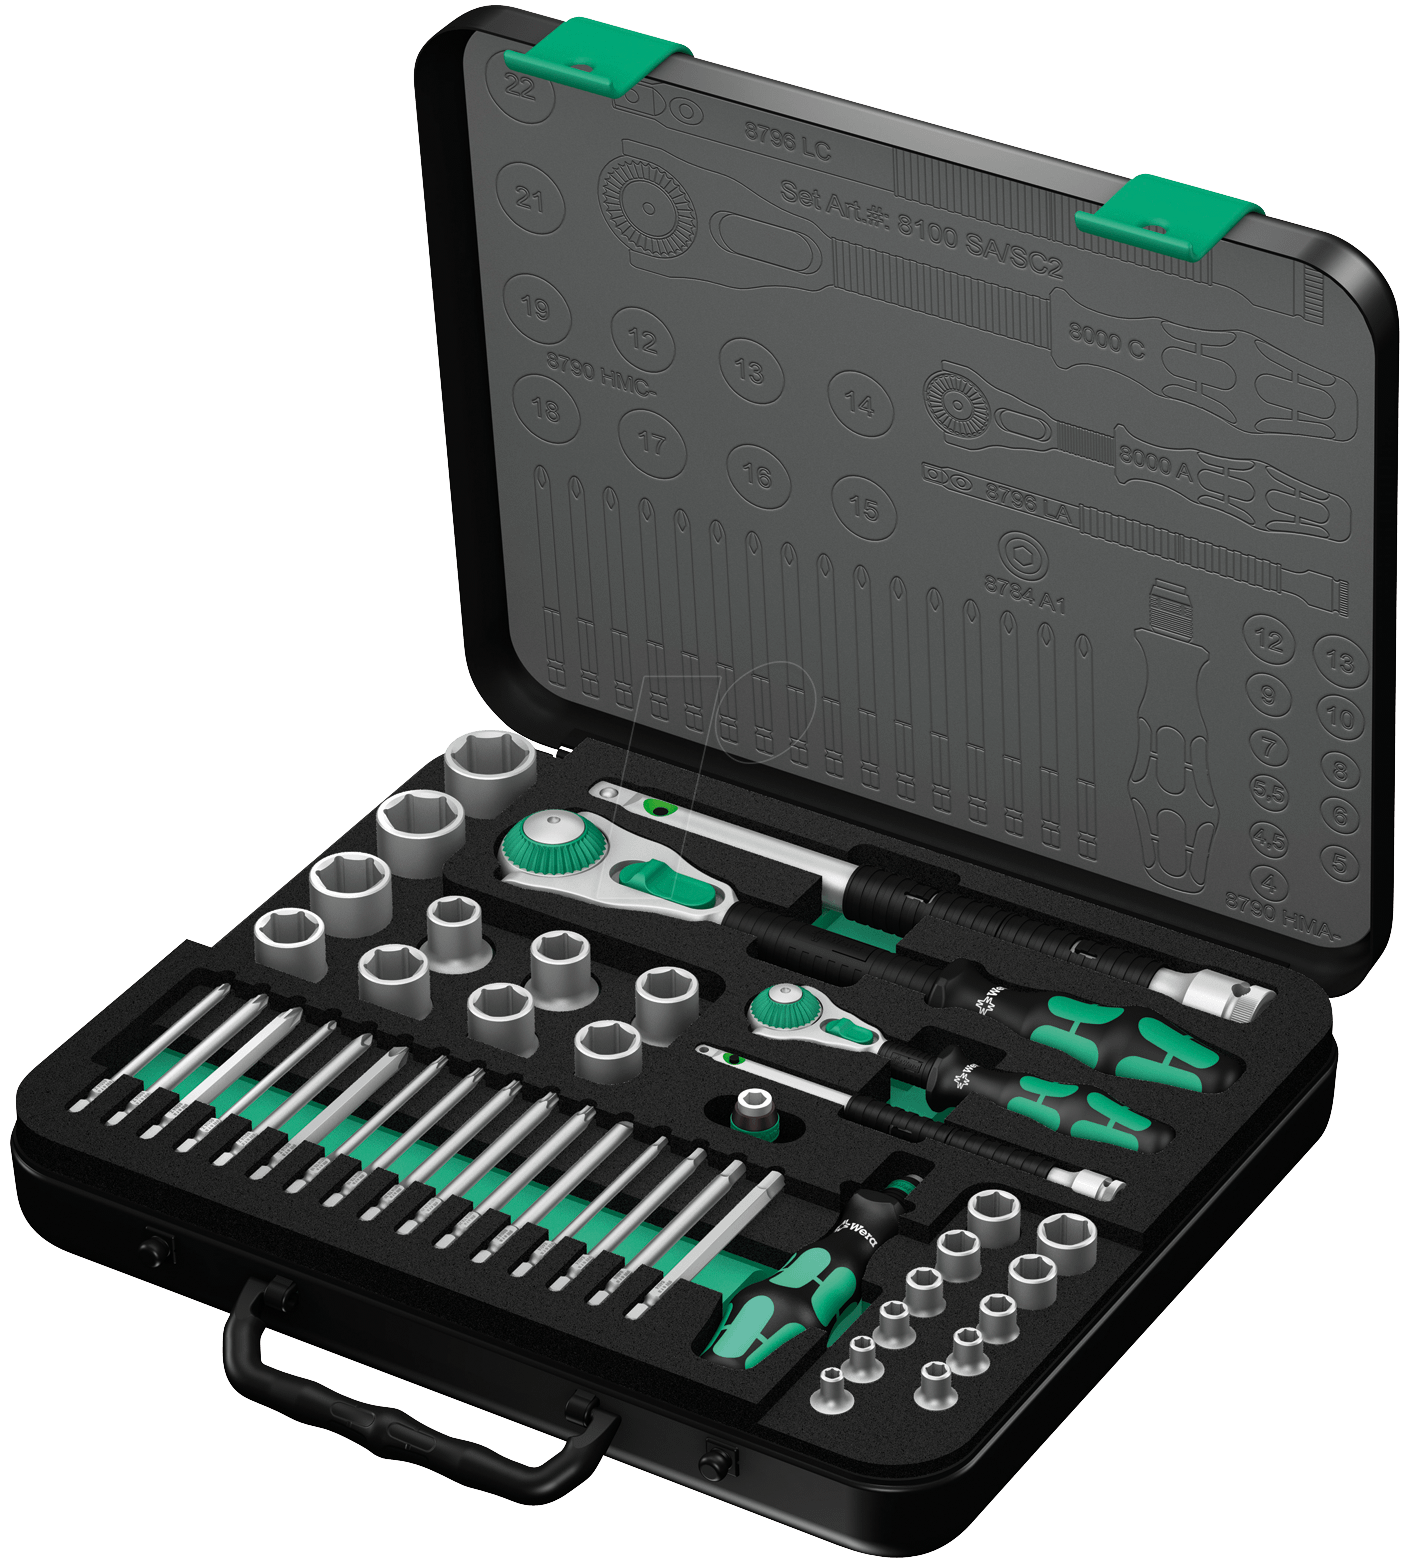 wera 8100 sasc2 zyklop socket set 1 4 12 drive at reichelt elektronik. Black Bedroom Furniture Sets. Home Design Ideas